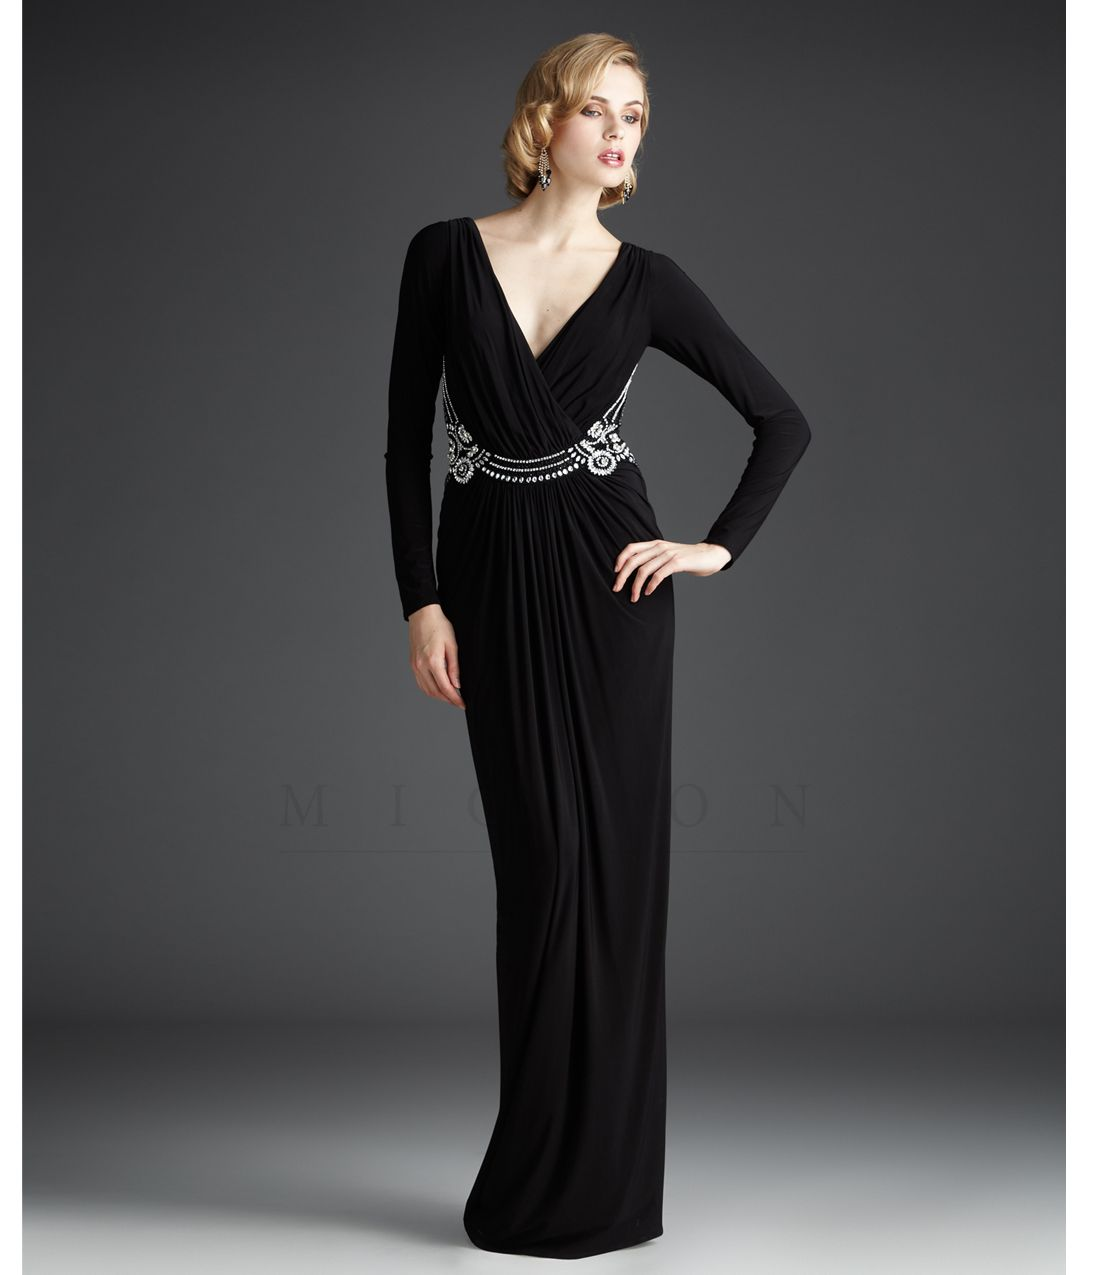 1920s Formal Dresses | Prom dresses, Fall dresses and Formal dresses